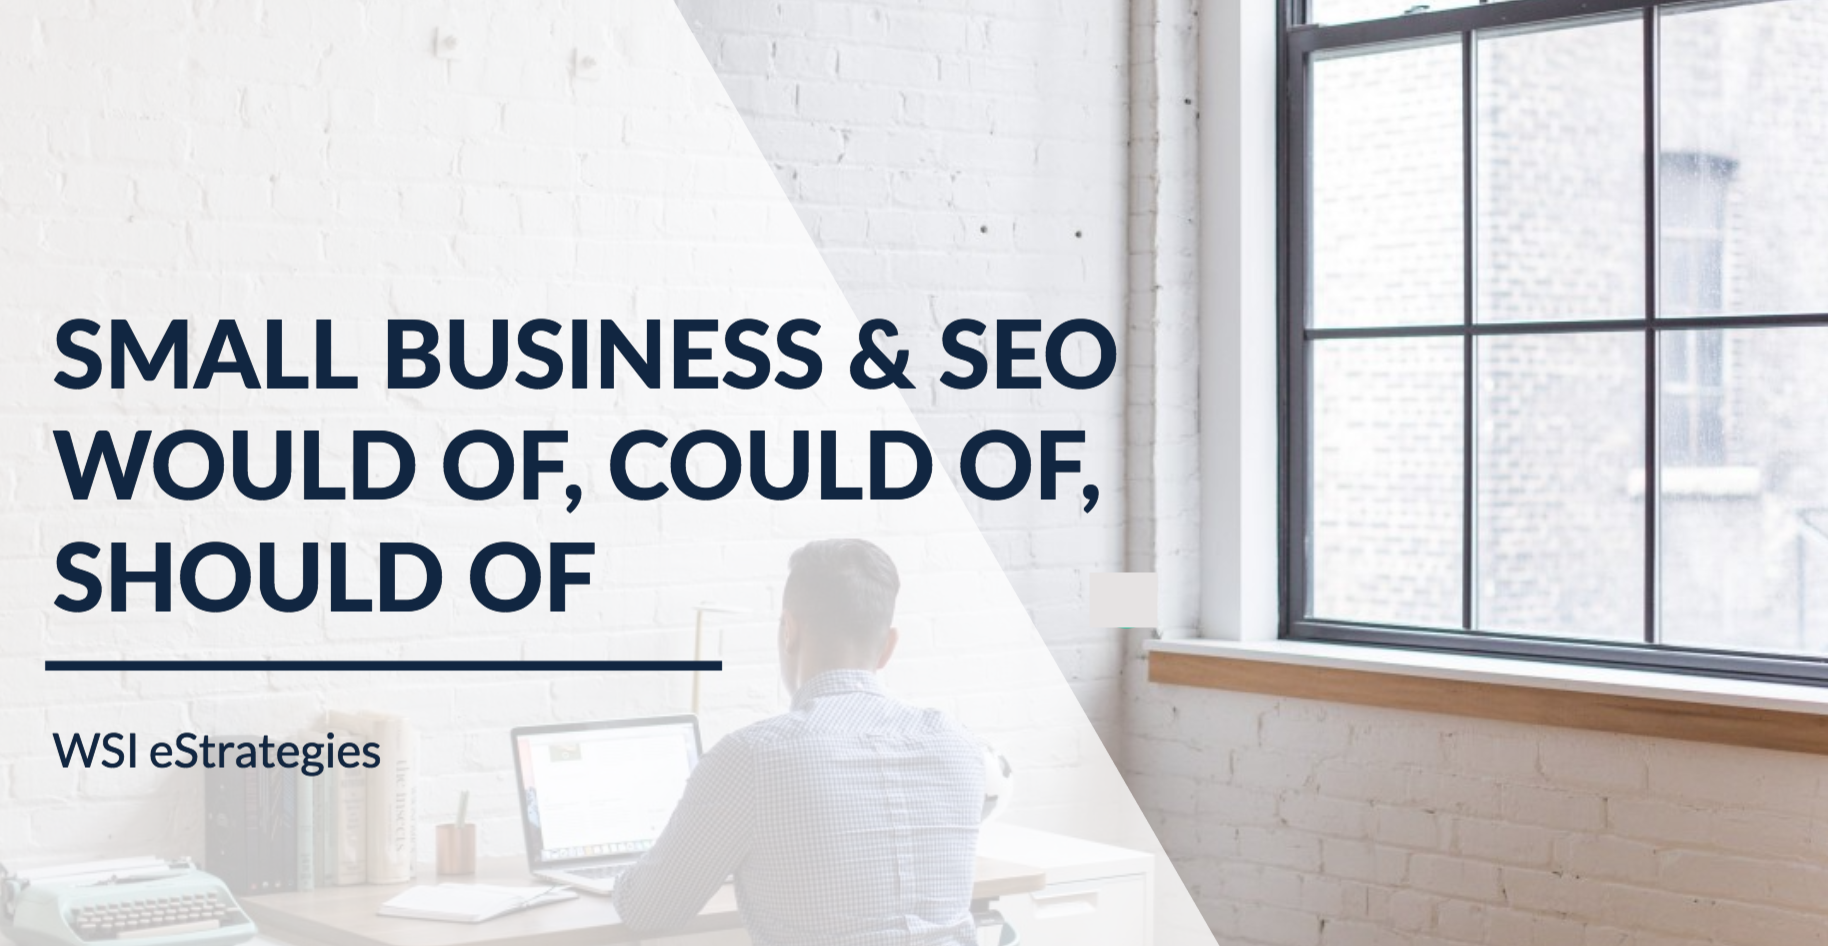 SMALL BUSINESS & SEO: WOULD OF, COULD OF, SHOULD OF